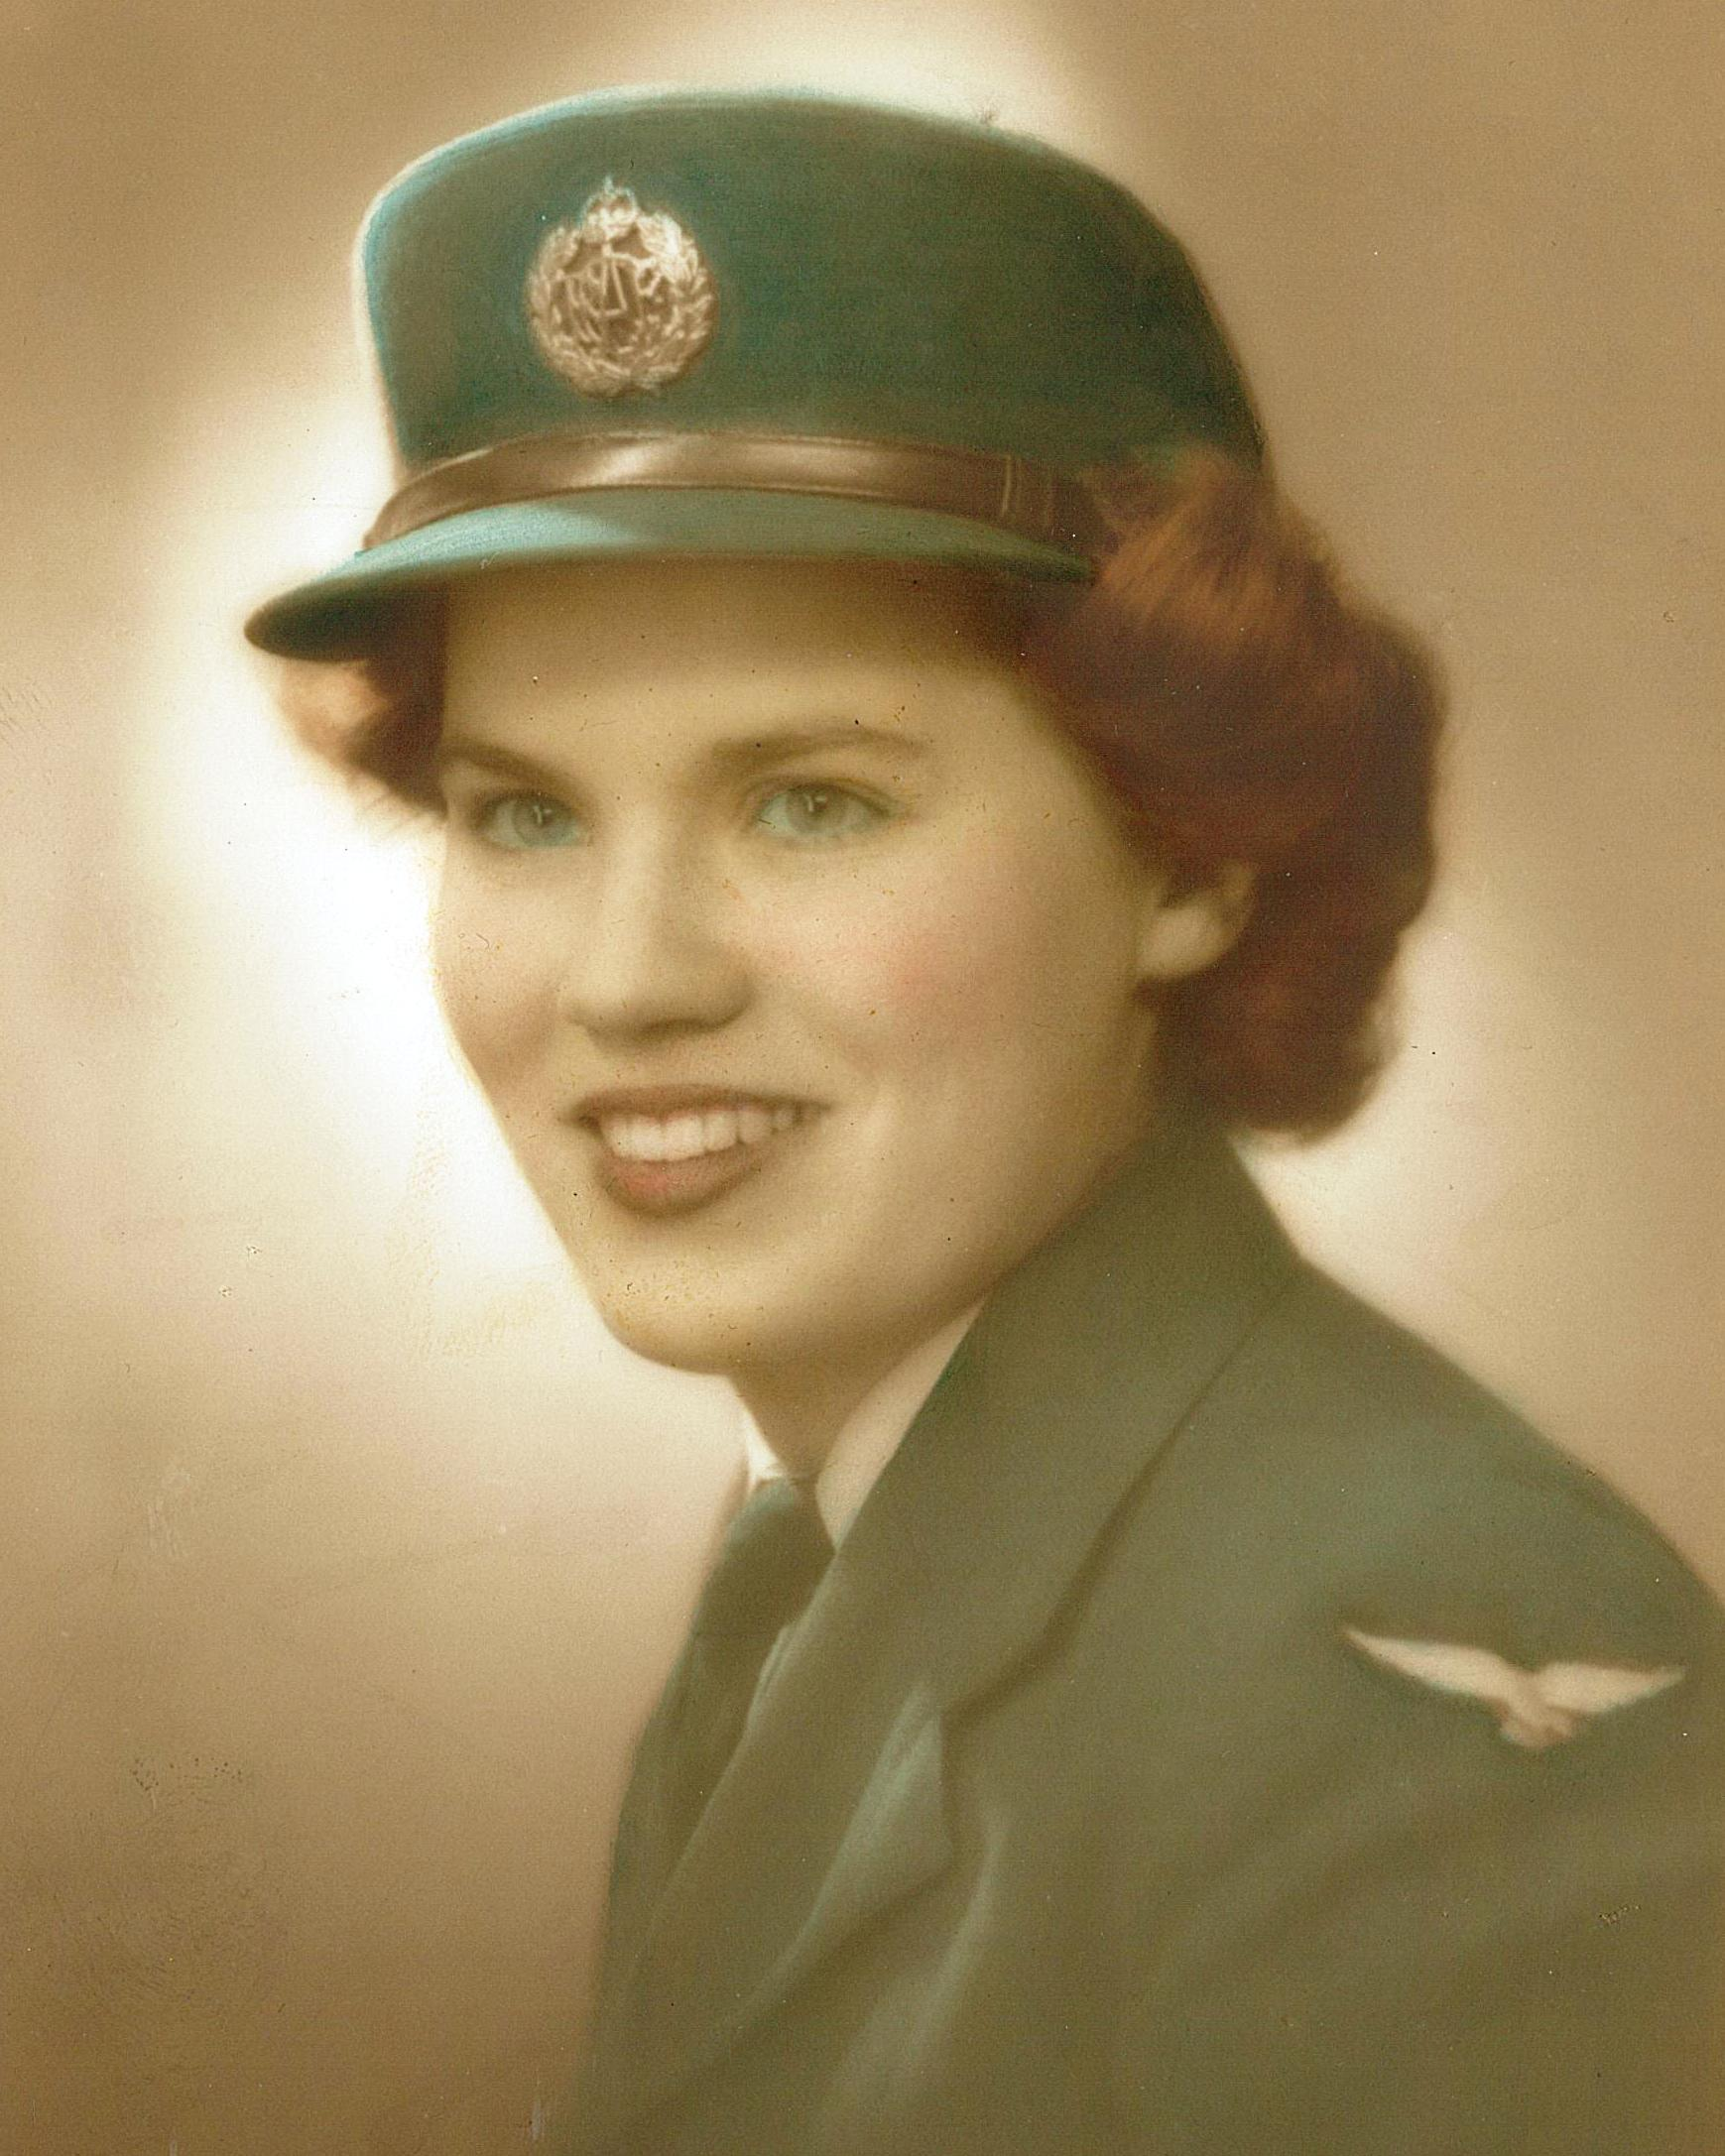 Jasmine in 1943 acting as a Canadian Air Force WAC Wireless Operator